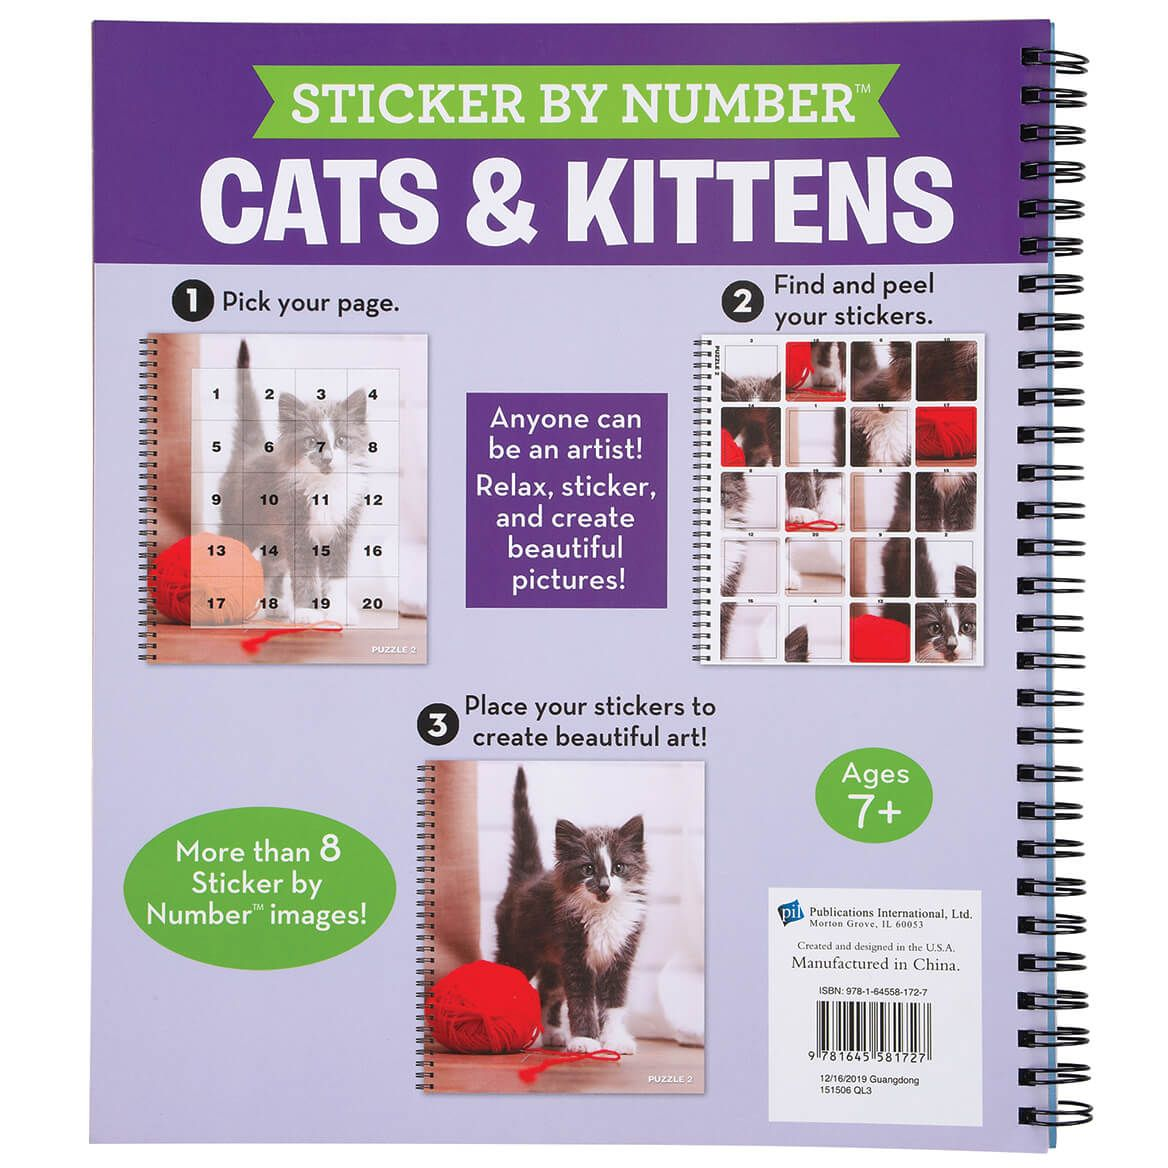 Brain Games® Sticker by Number Cats & Kittens Book-370343